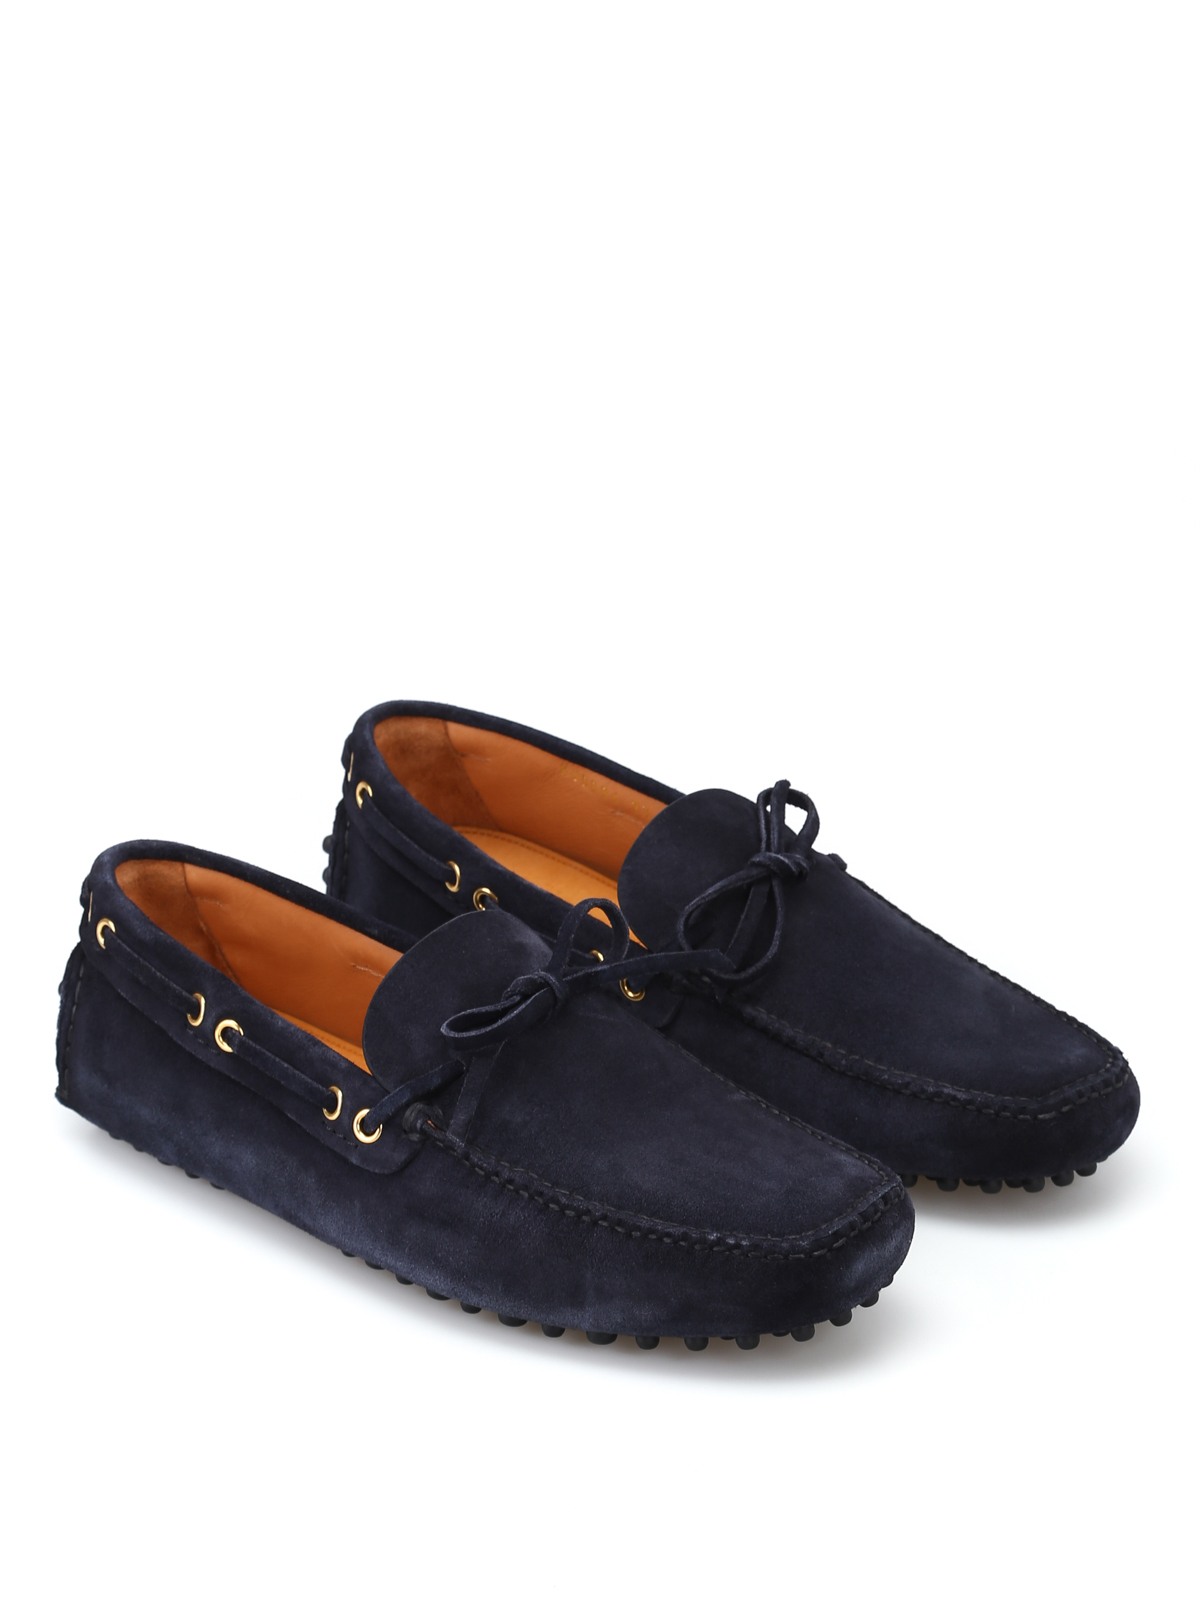 9c8295f661a99 Car Shoe - Blue suede driver shoes - Loafers & Slippers - KUD006 LVA ...